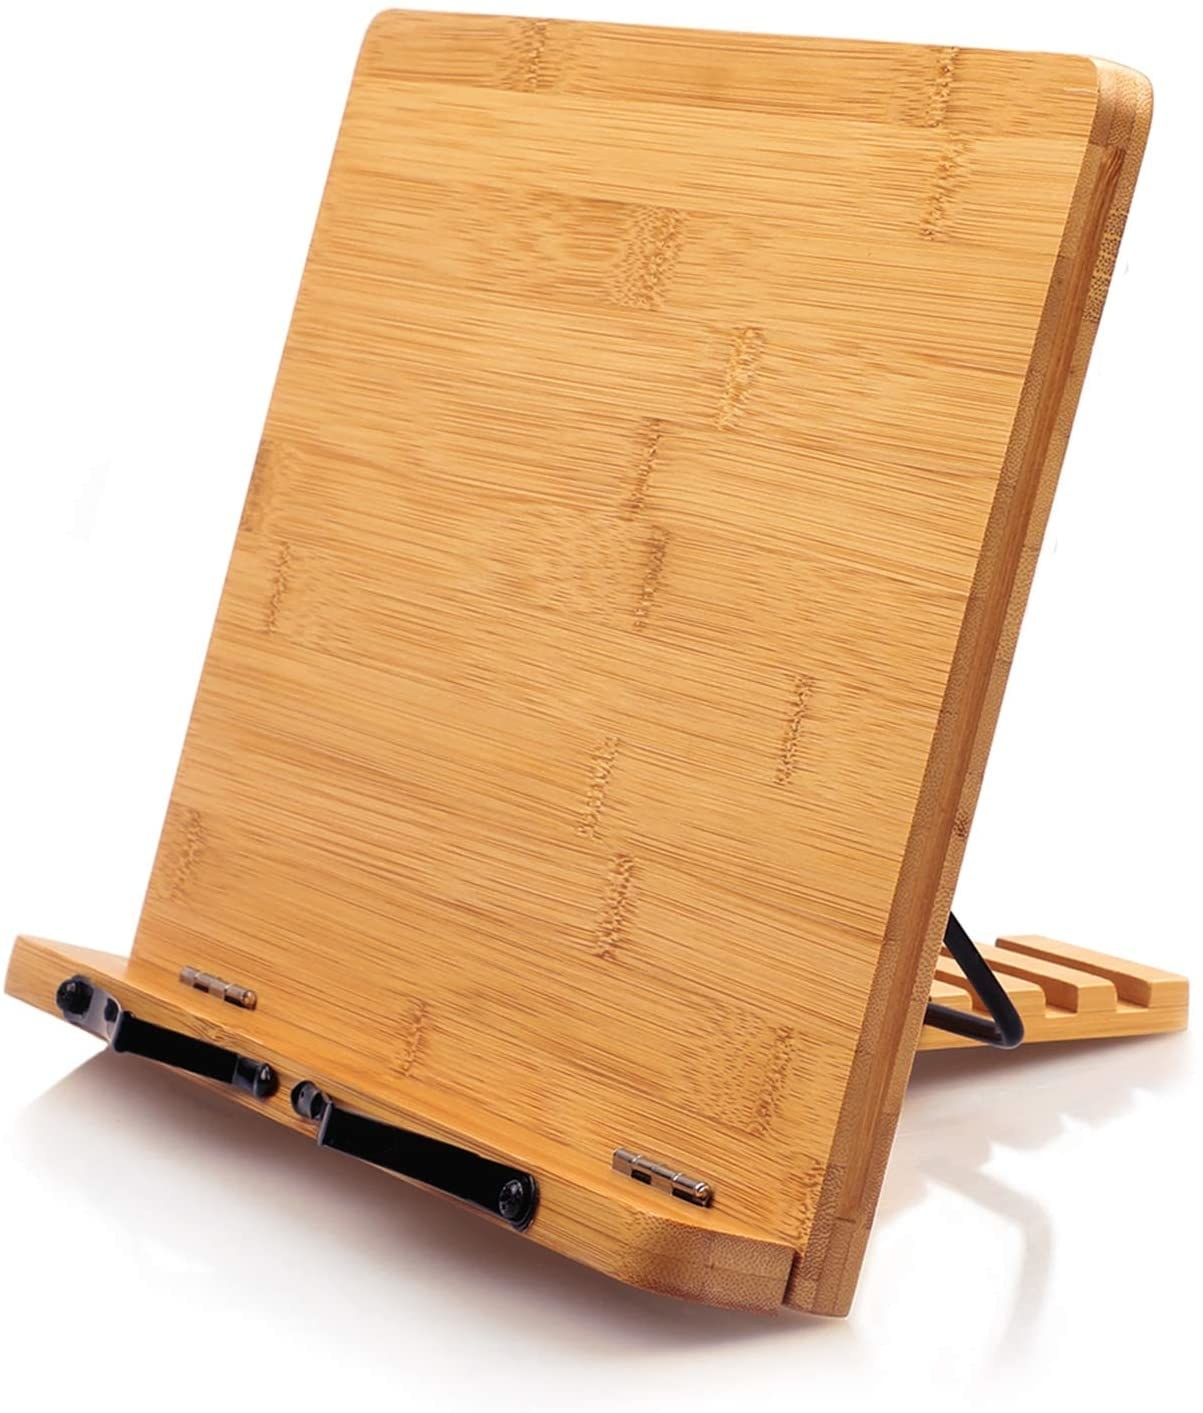 The bamboo cookbook stand